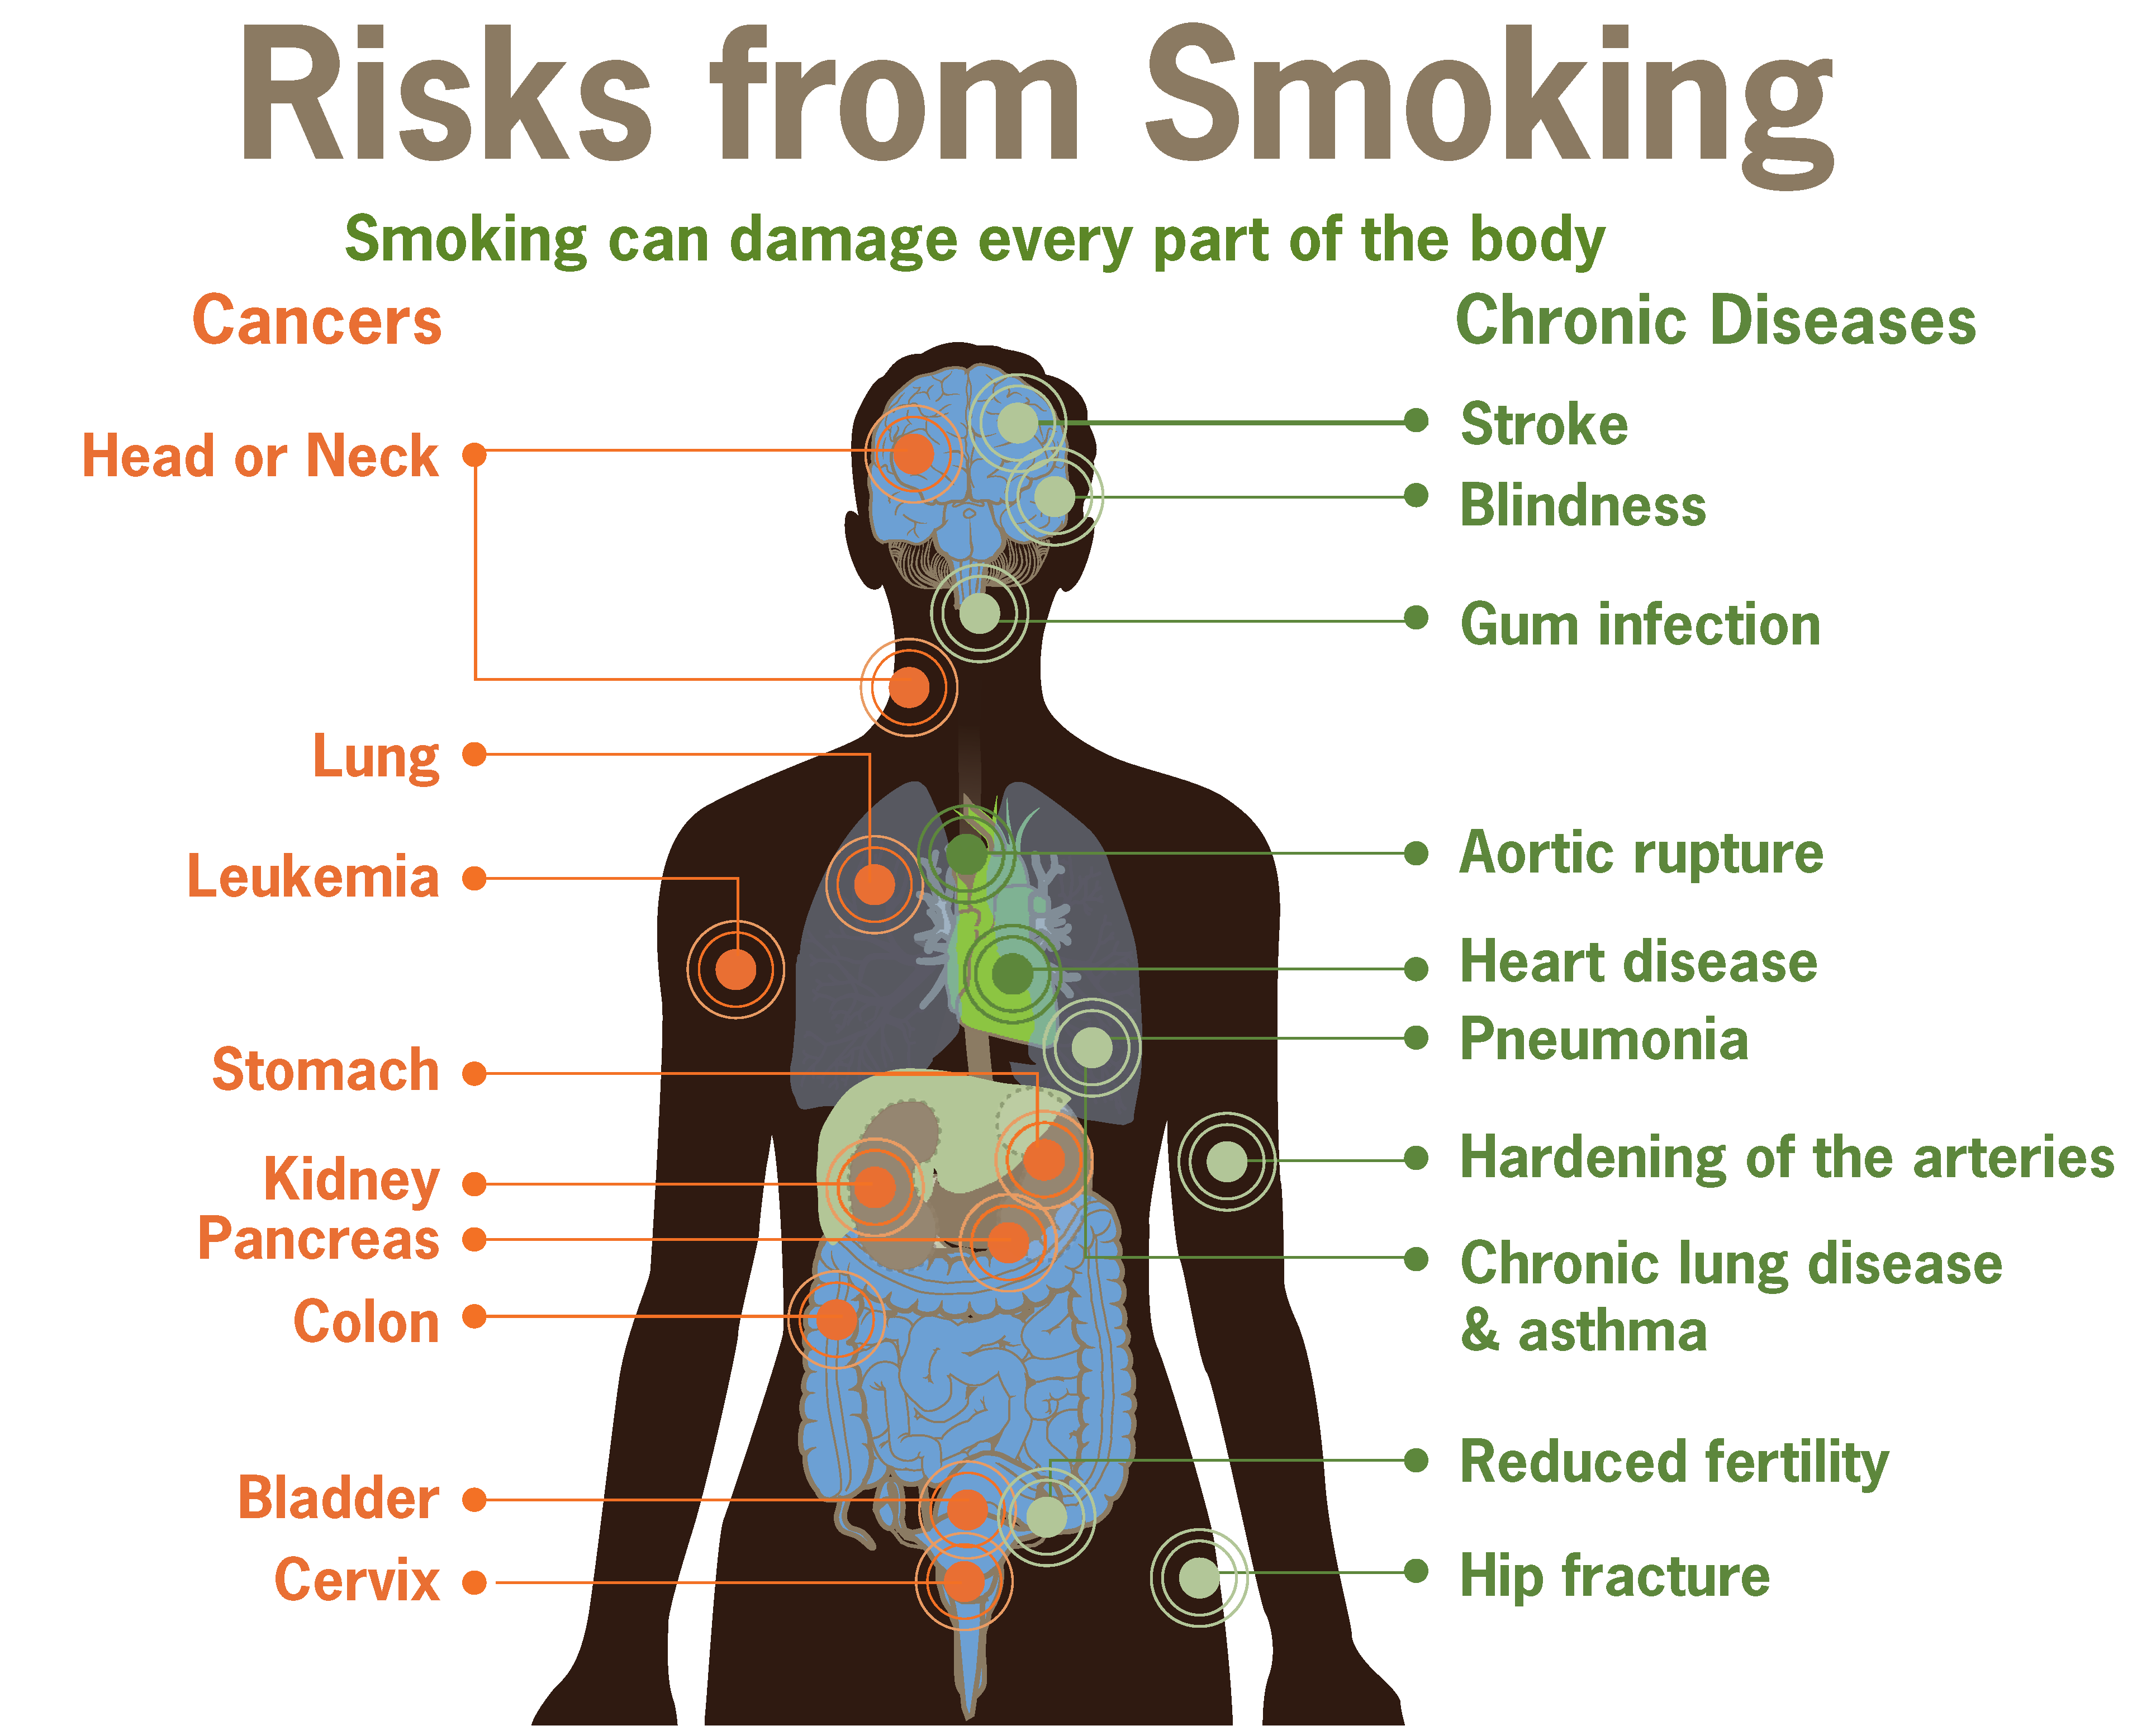 file risks form smoking smoking can damage every part of the body  file risks form smoking smoking can damage every part of the body png